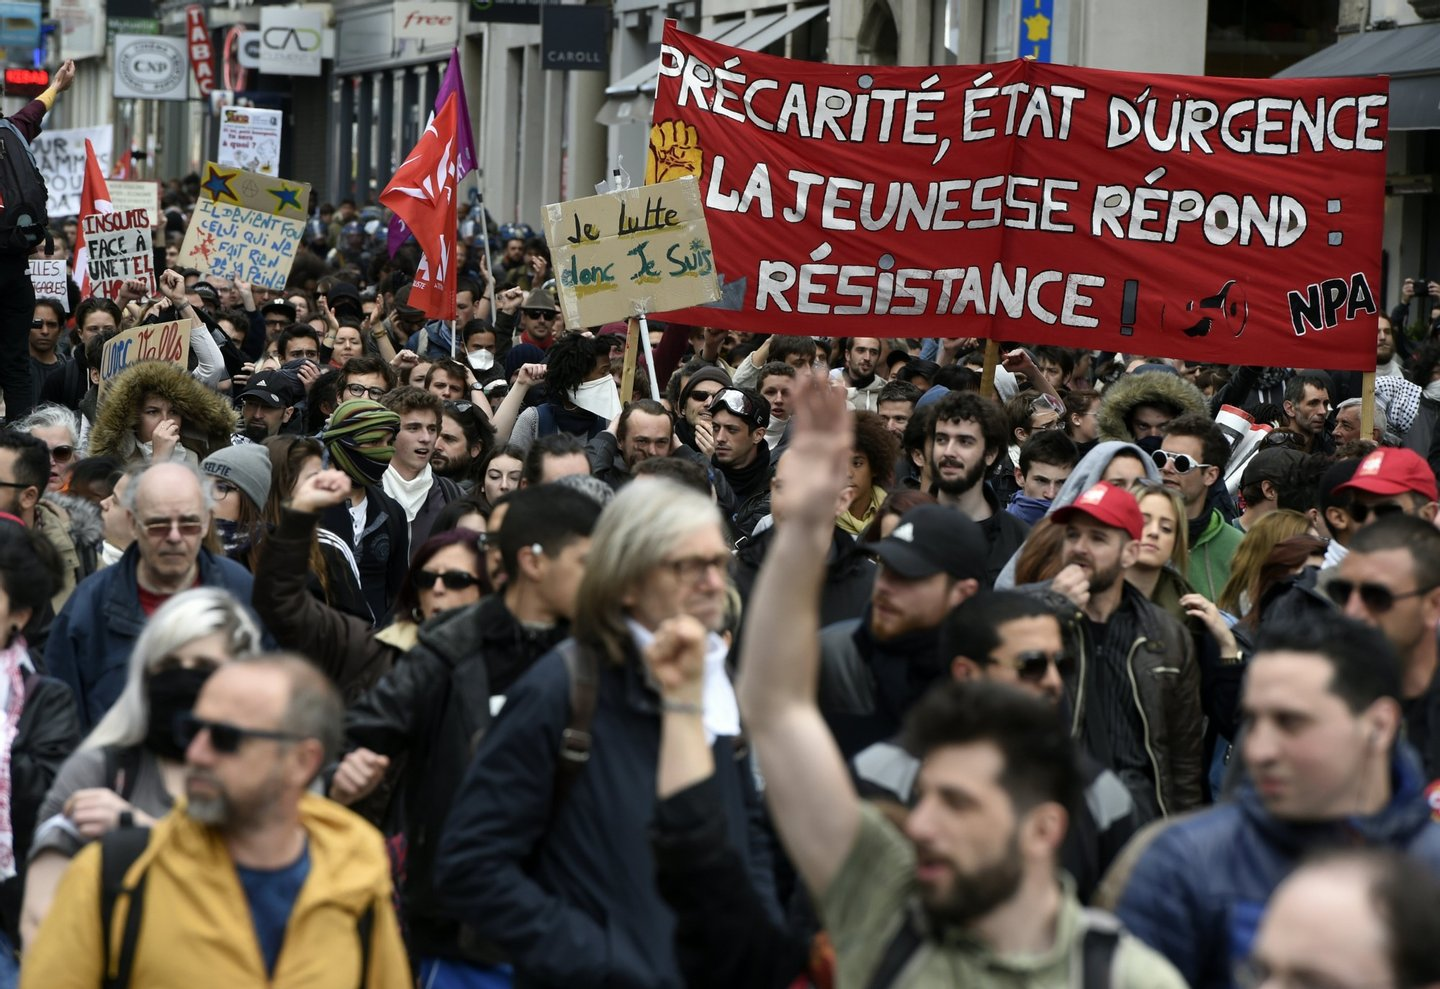 Peole demonstrate against the French government's proposed labour reforms on April 28, 2016 in Lyon, southeastern France. / AFP / PHILIPPE DESMAZES (Photo credit should read PHILIPPE DESMAZES/AFP/Getty Images)